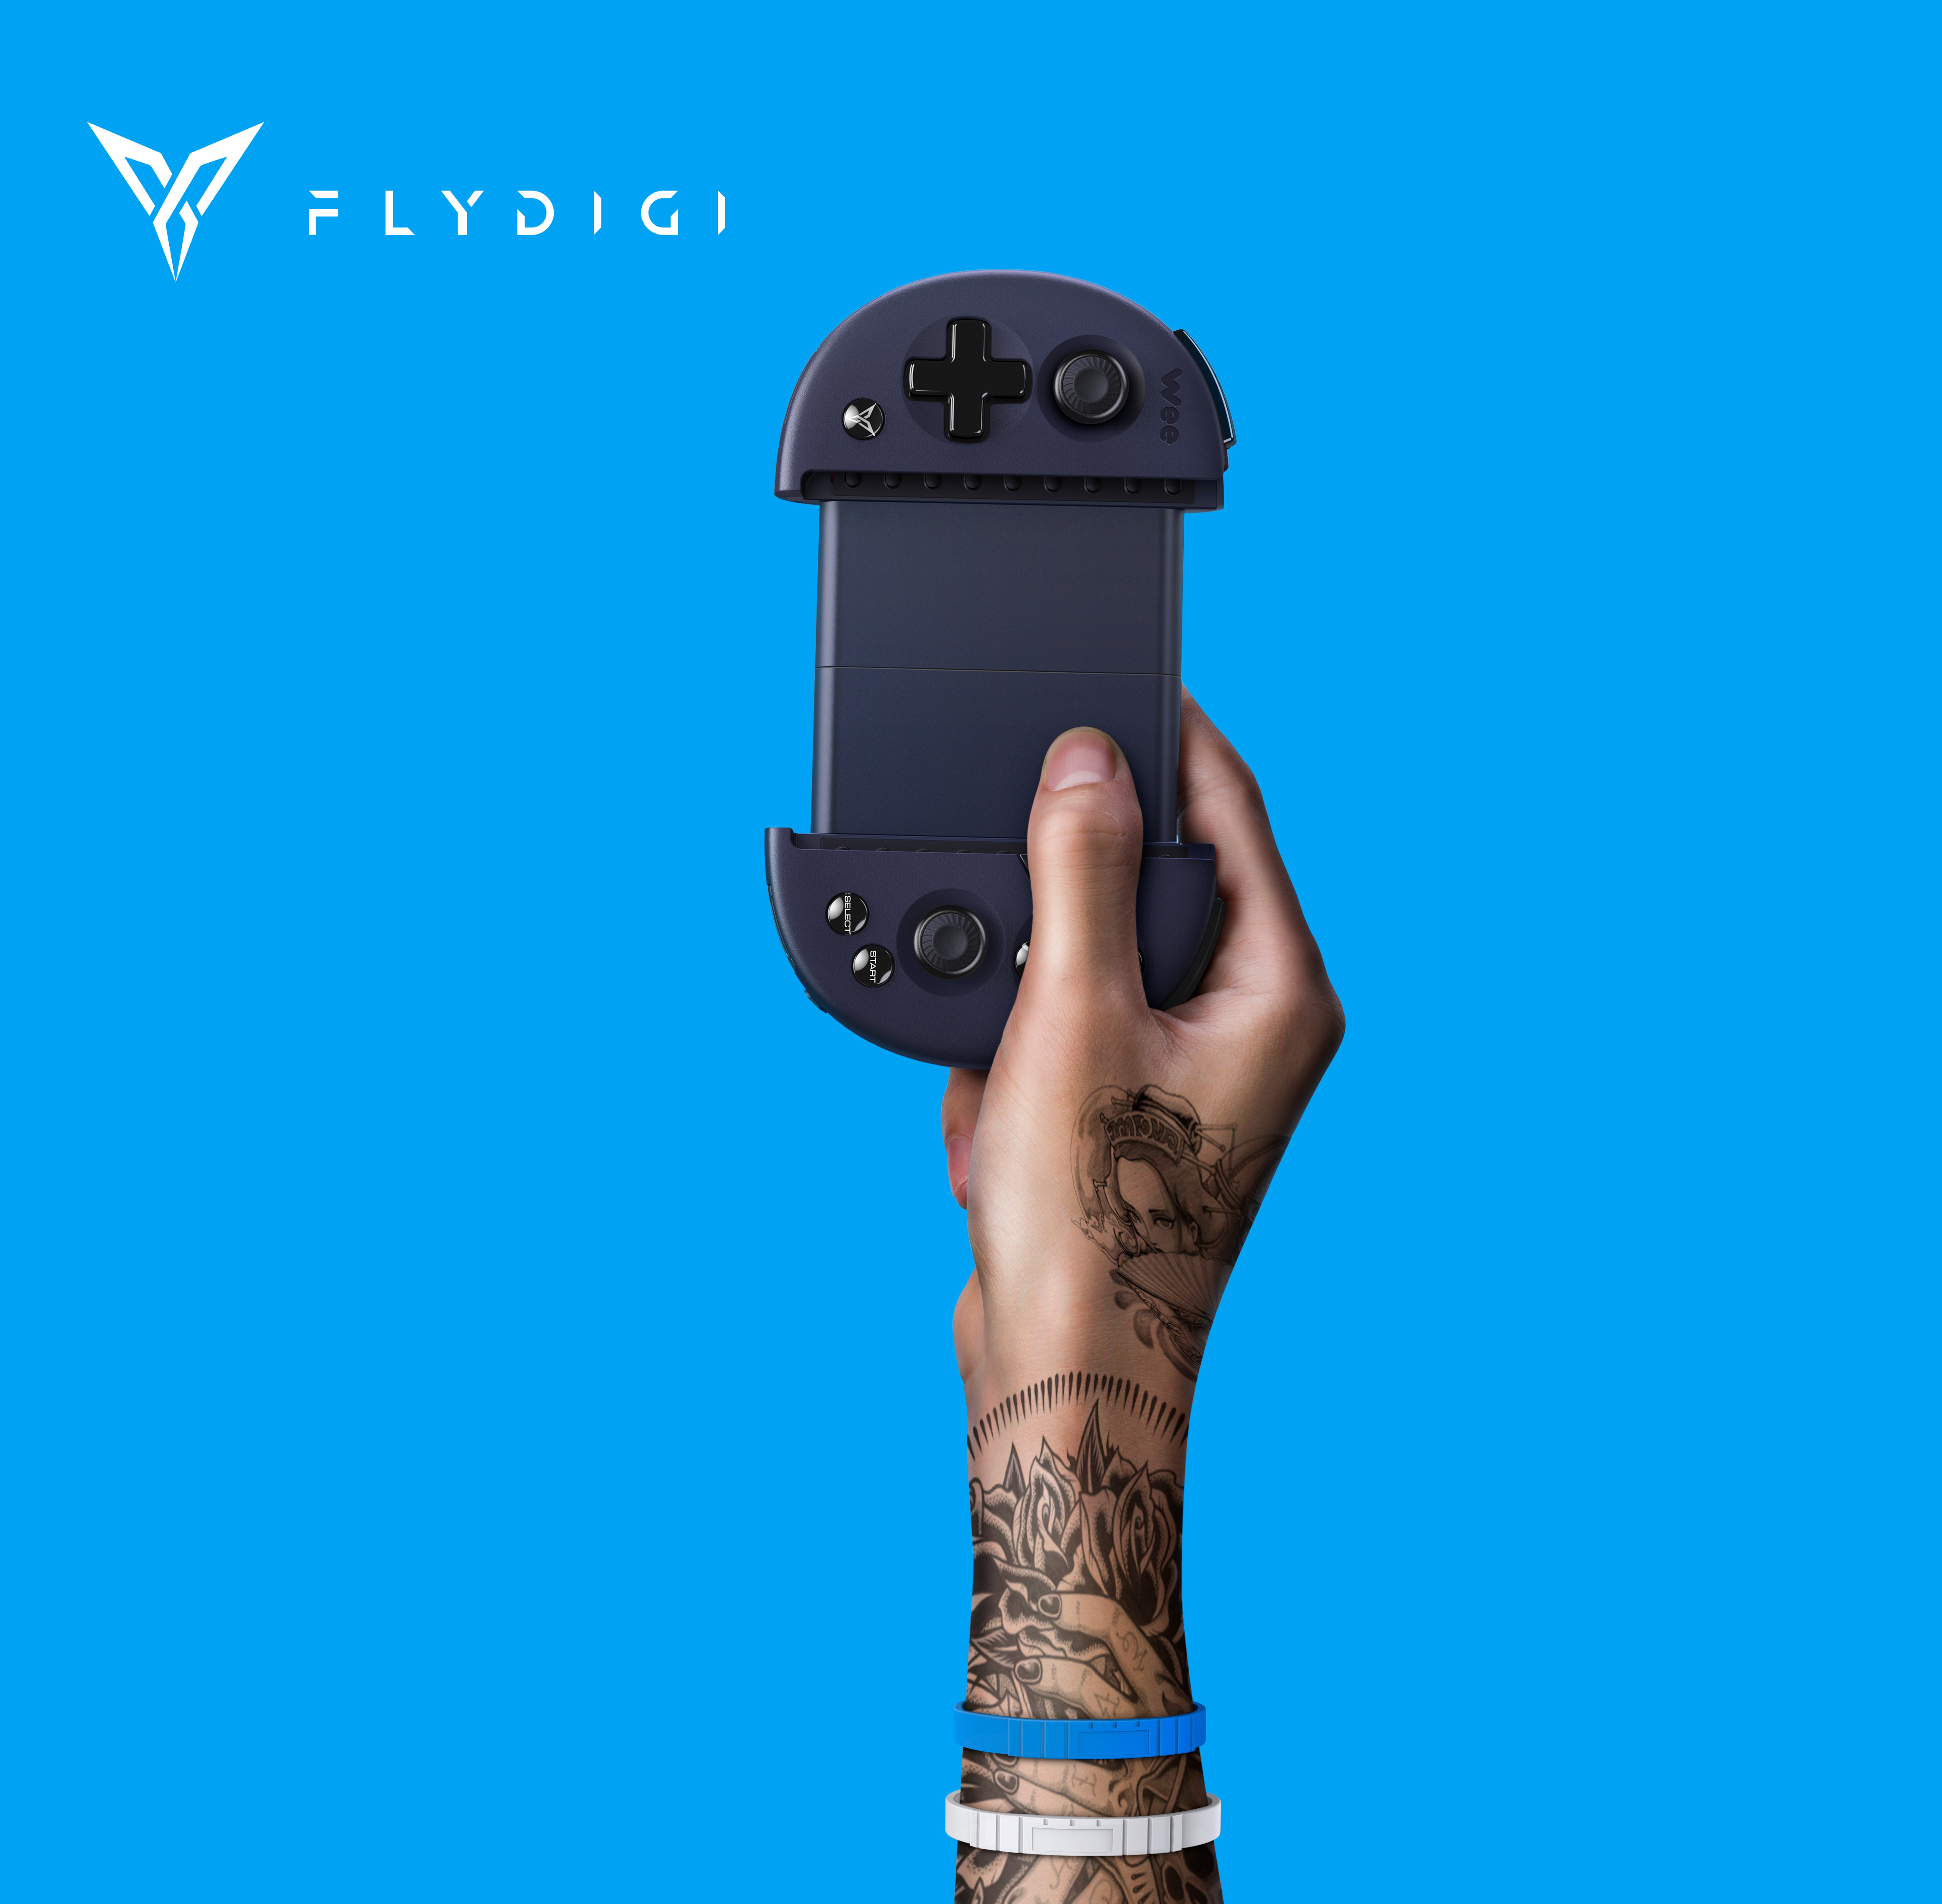 Flydigi pubg cod controller mobile game wee 2T Motion Sensing gamepad IOS/android telescopic Bluetooth controller геймпад(China)